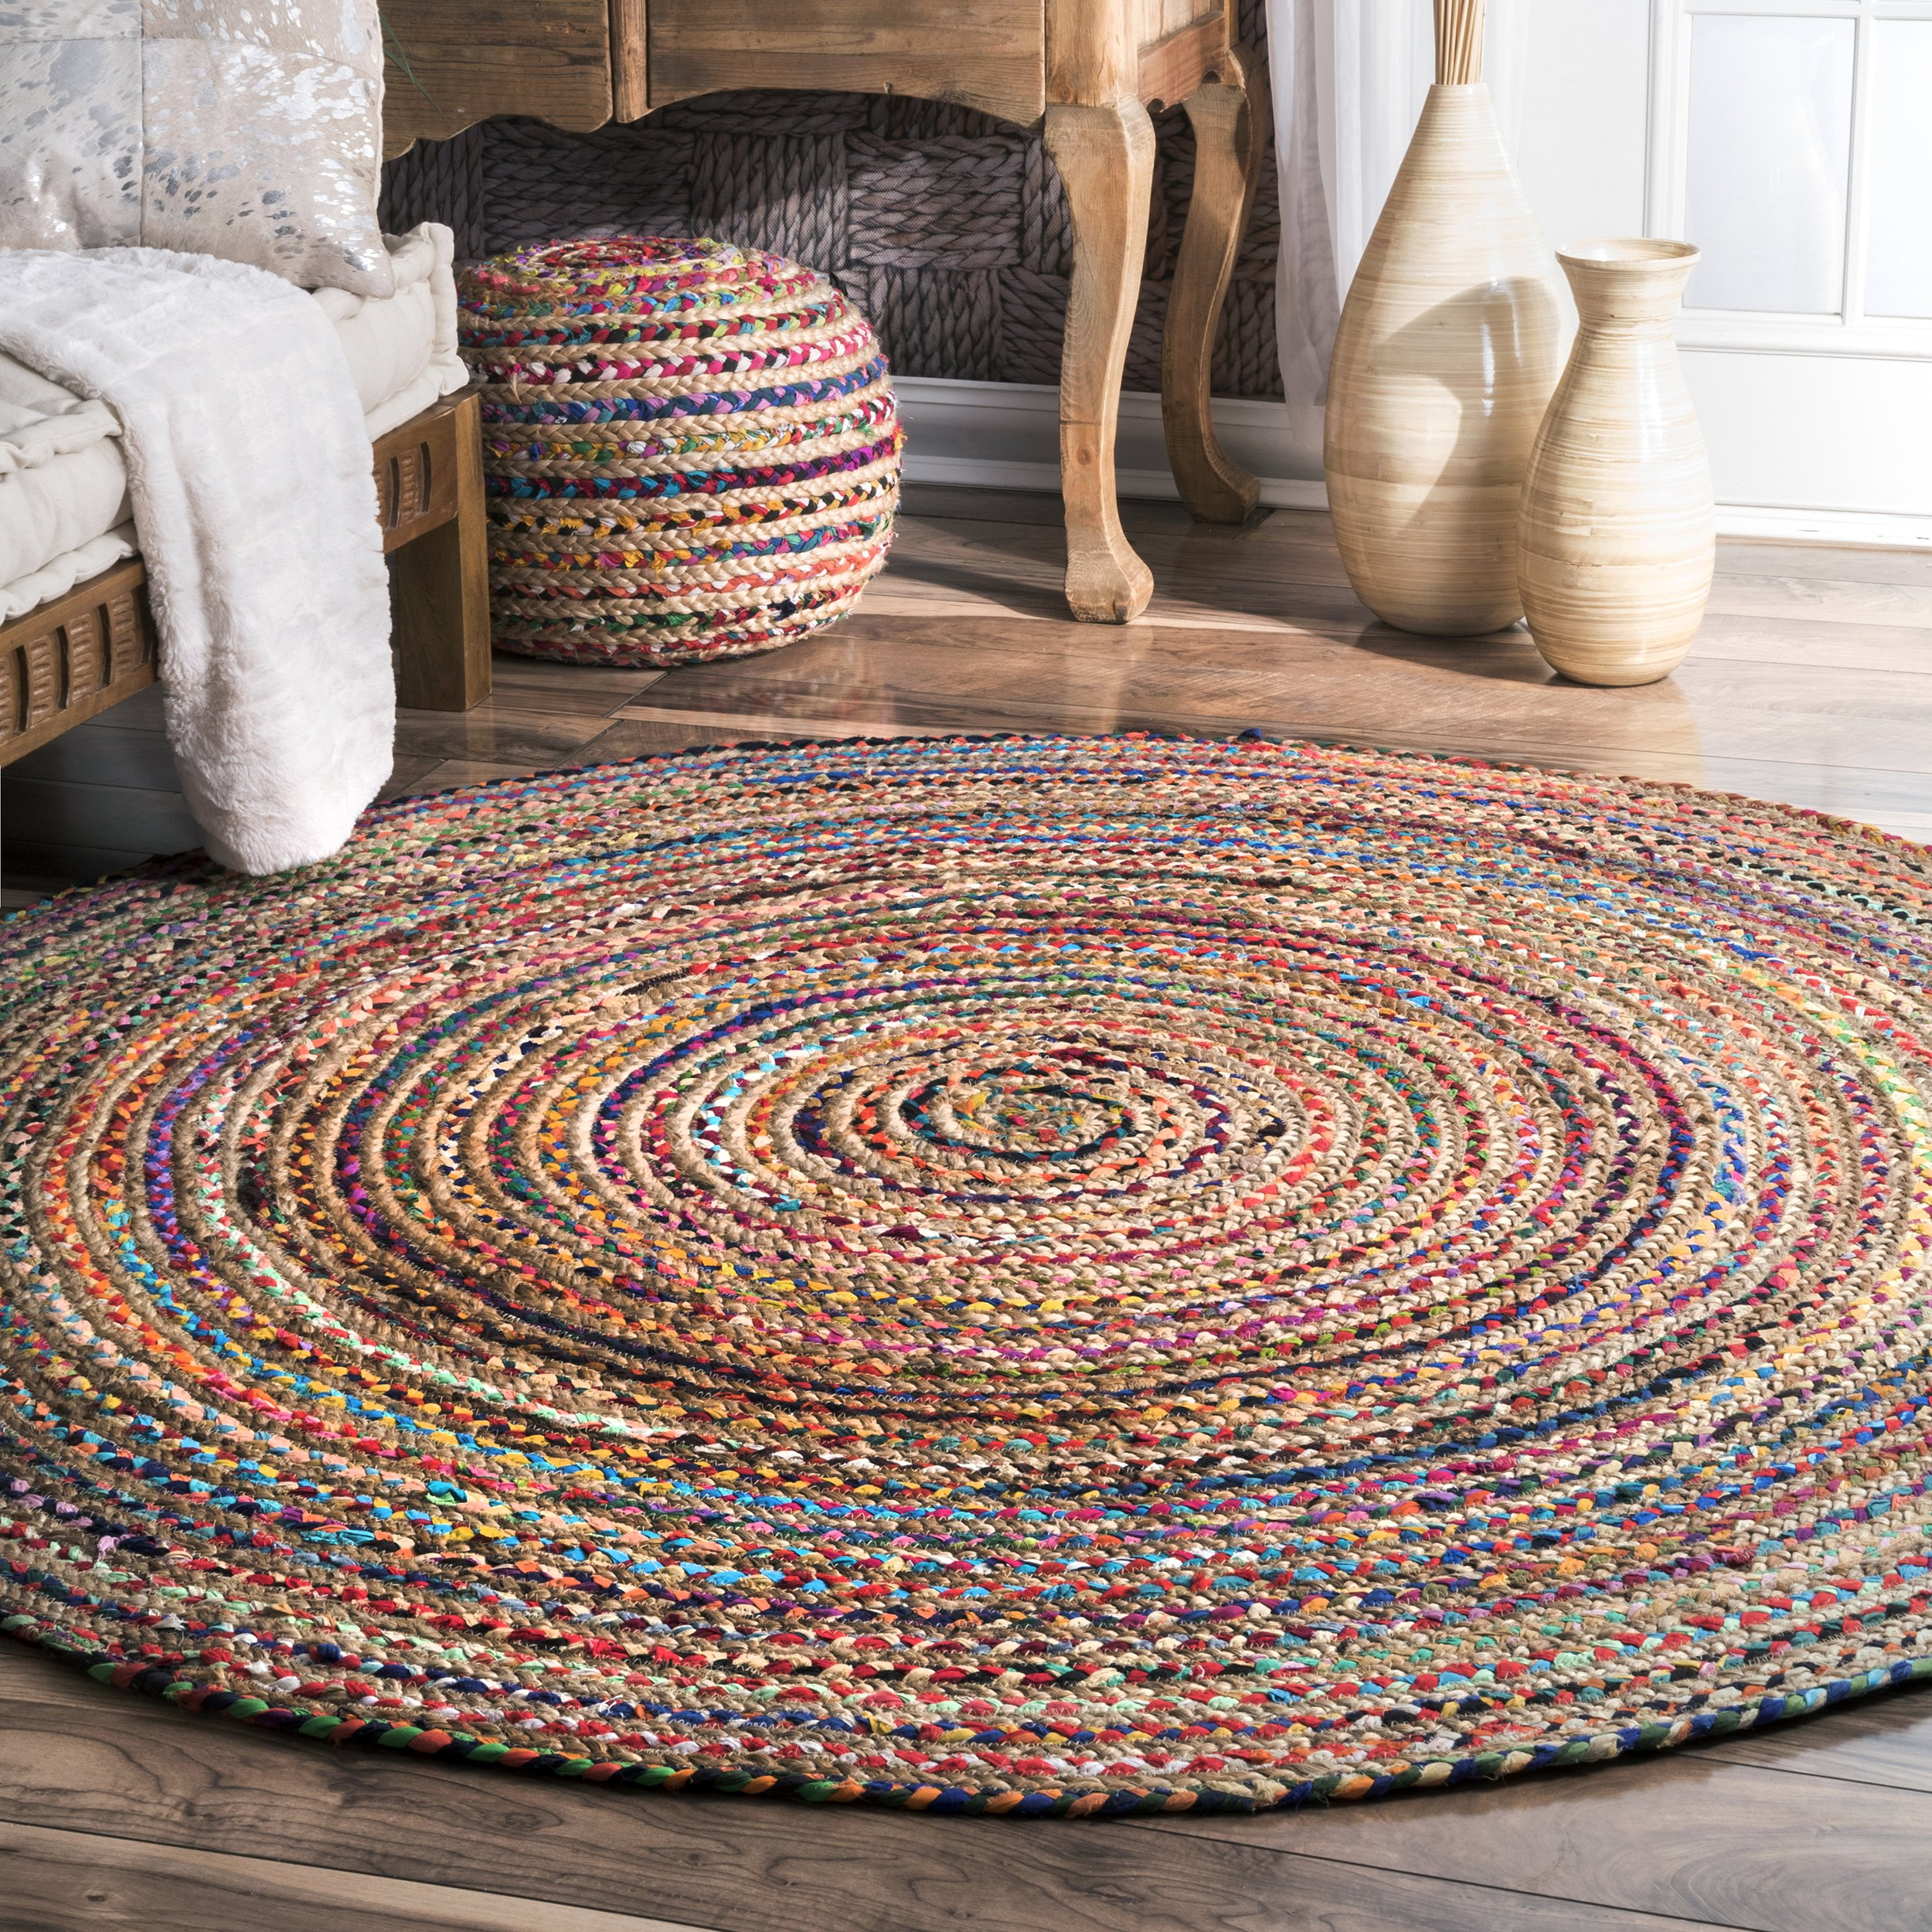 nuLOOM Multicolor Aleen Braided Cotton/Jute Round Rug, 8' Feet